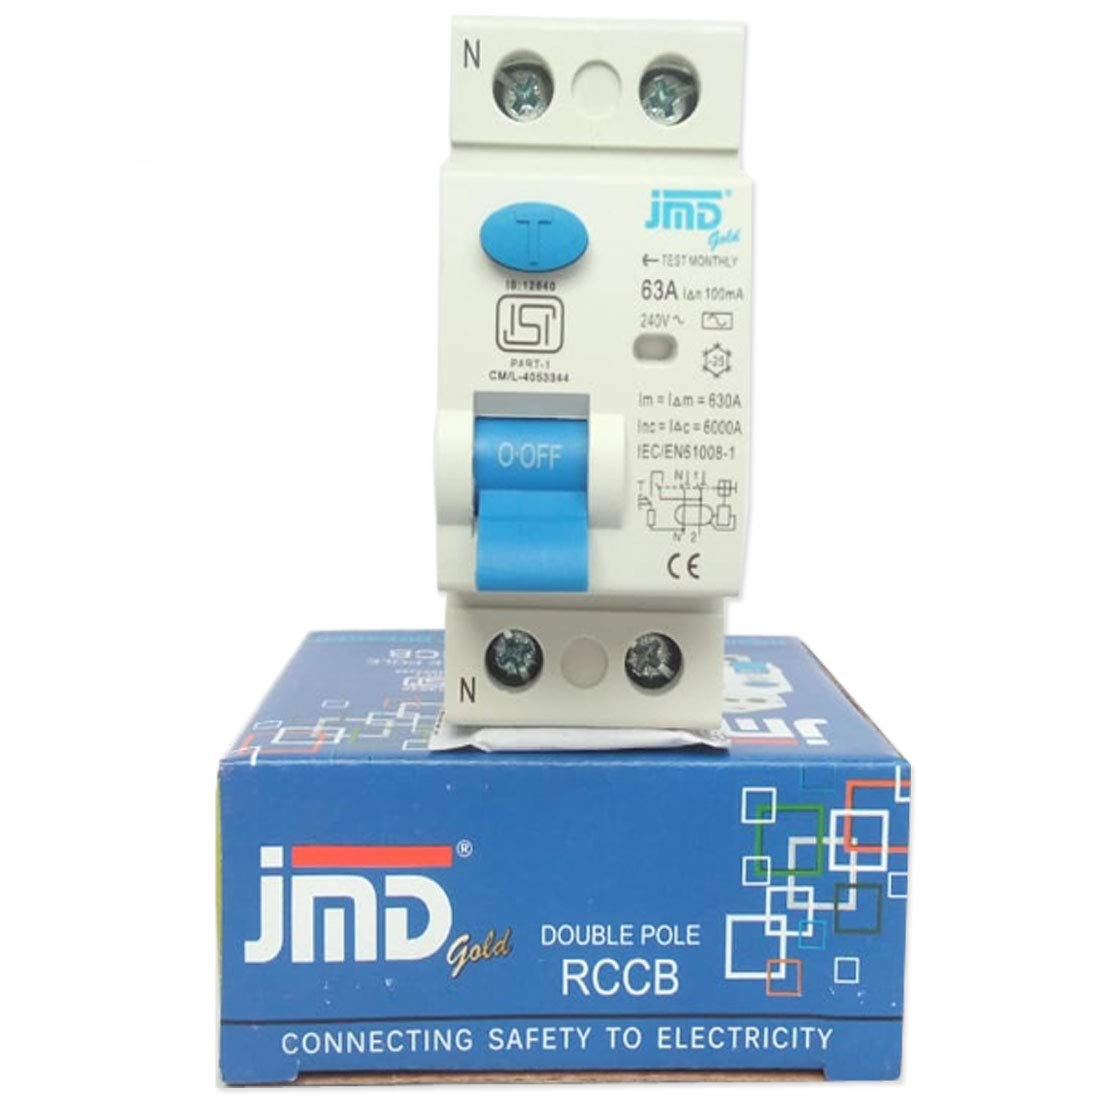 Jmd Gold Rccb Double Pole 63 Amp 100ma 240 V Residual Current How Does A Circuit Breaker Work Isi Mark Mcb Garden Outdoors